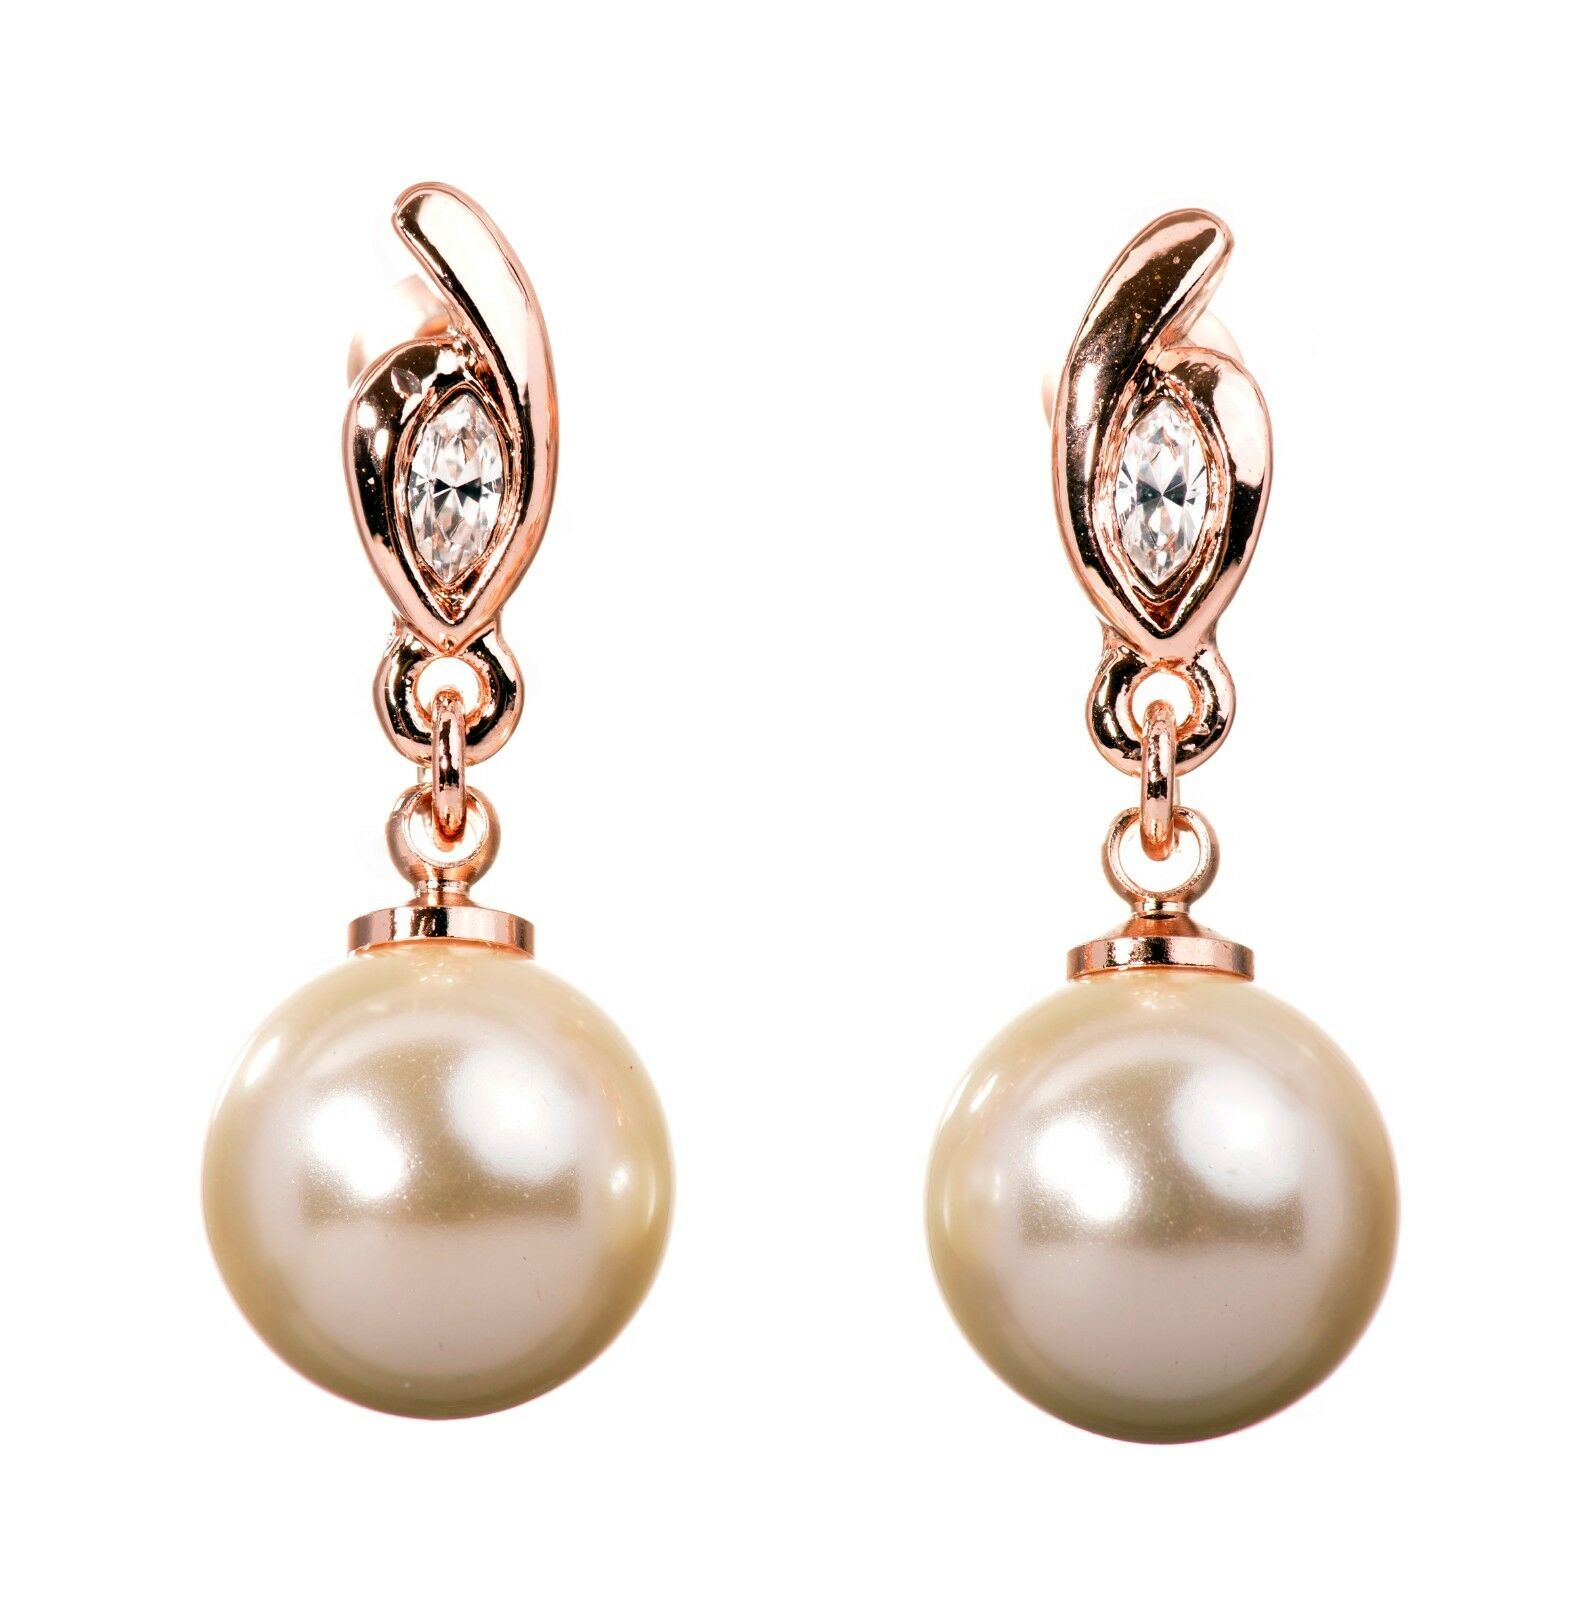 Crystals From Swarovski Pearl Drop Pierced Earrings Rose Gold Authentic 7305v